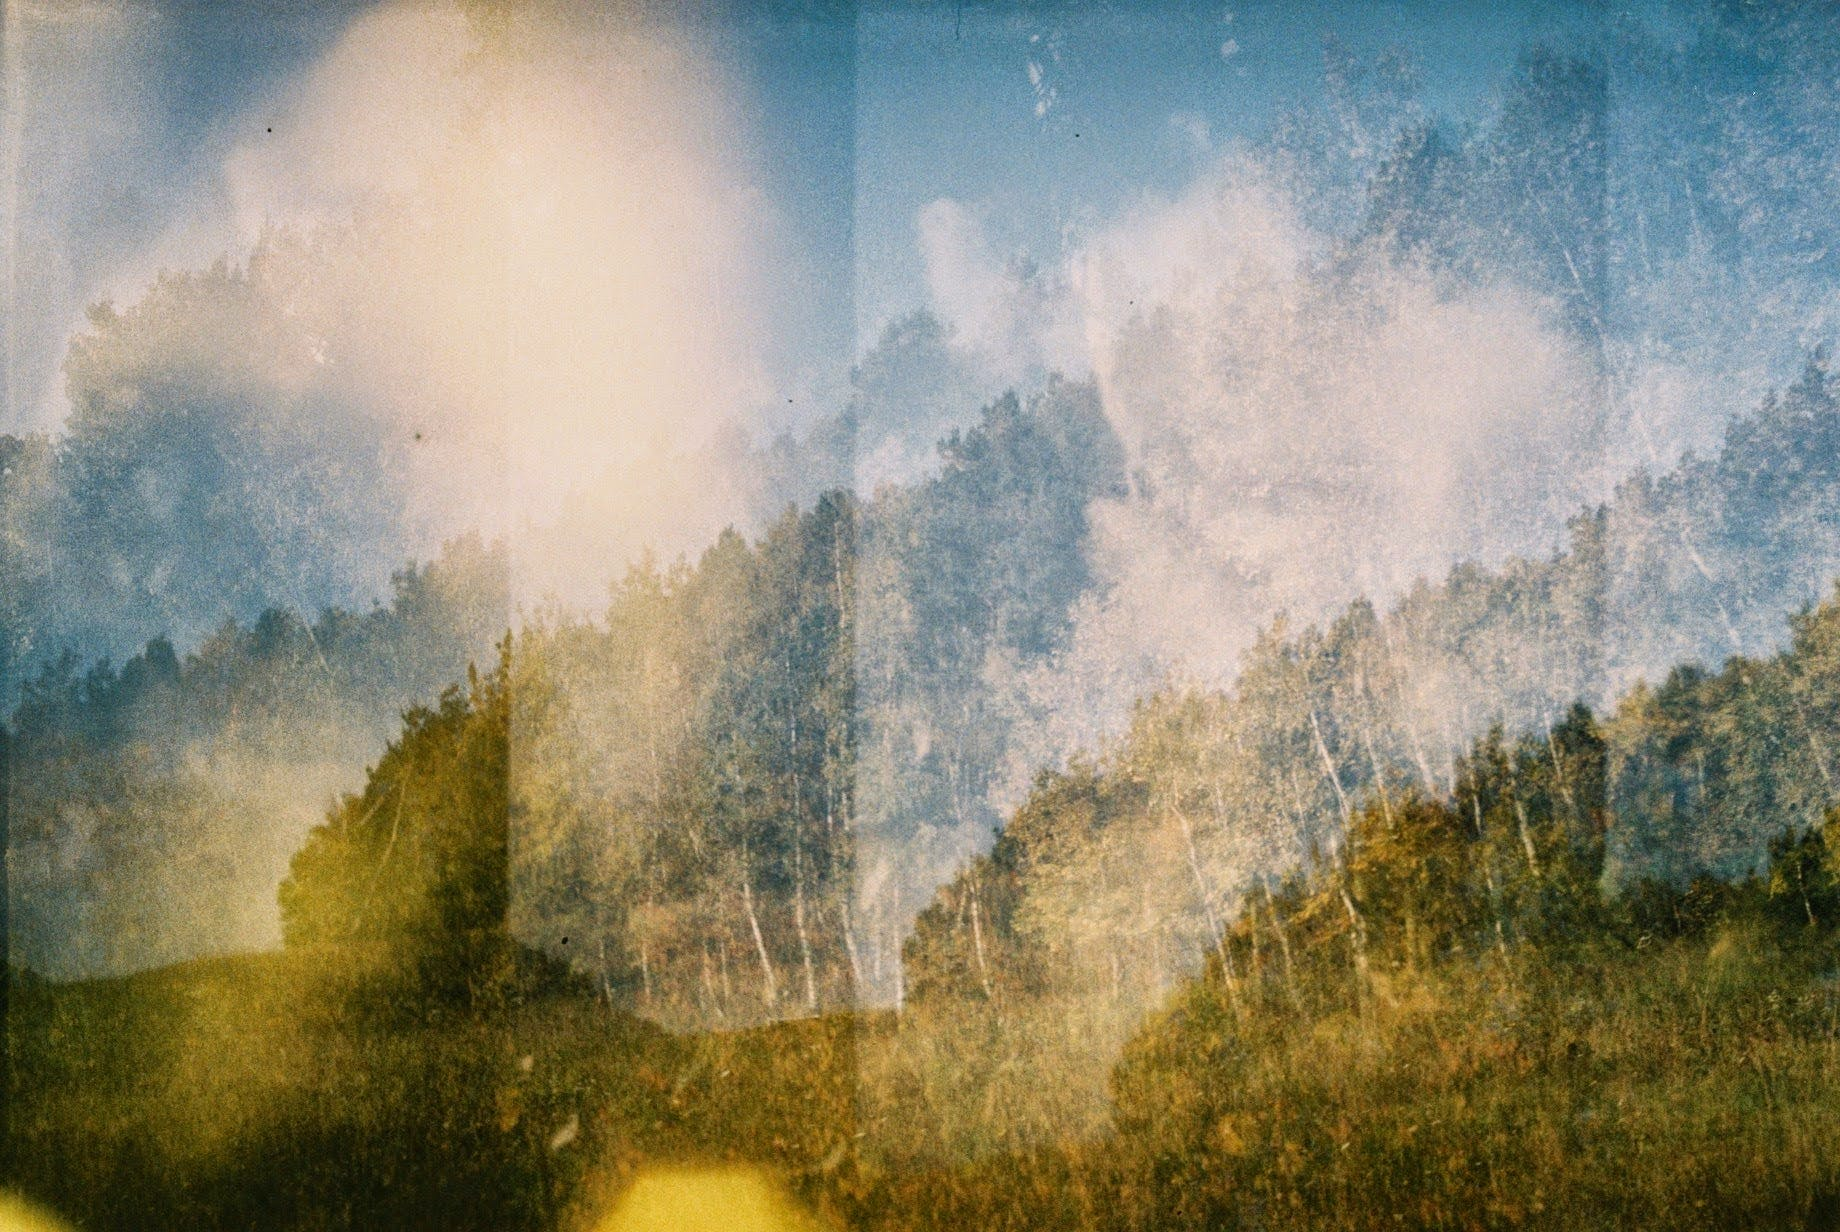 Free stock photo of analog camera, double exposure, field, forest